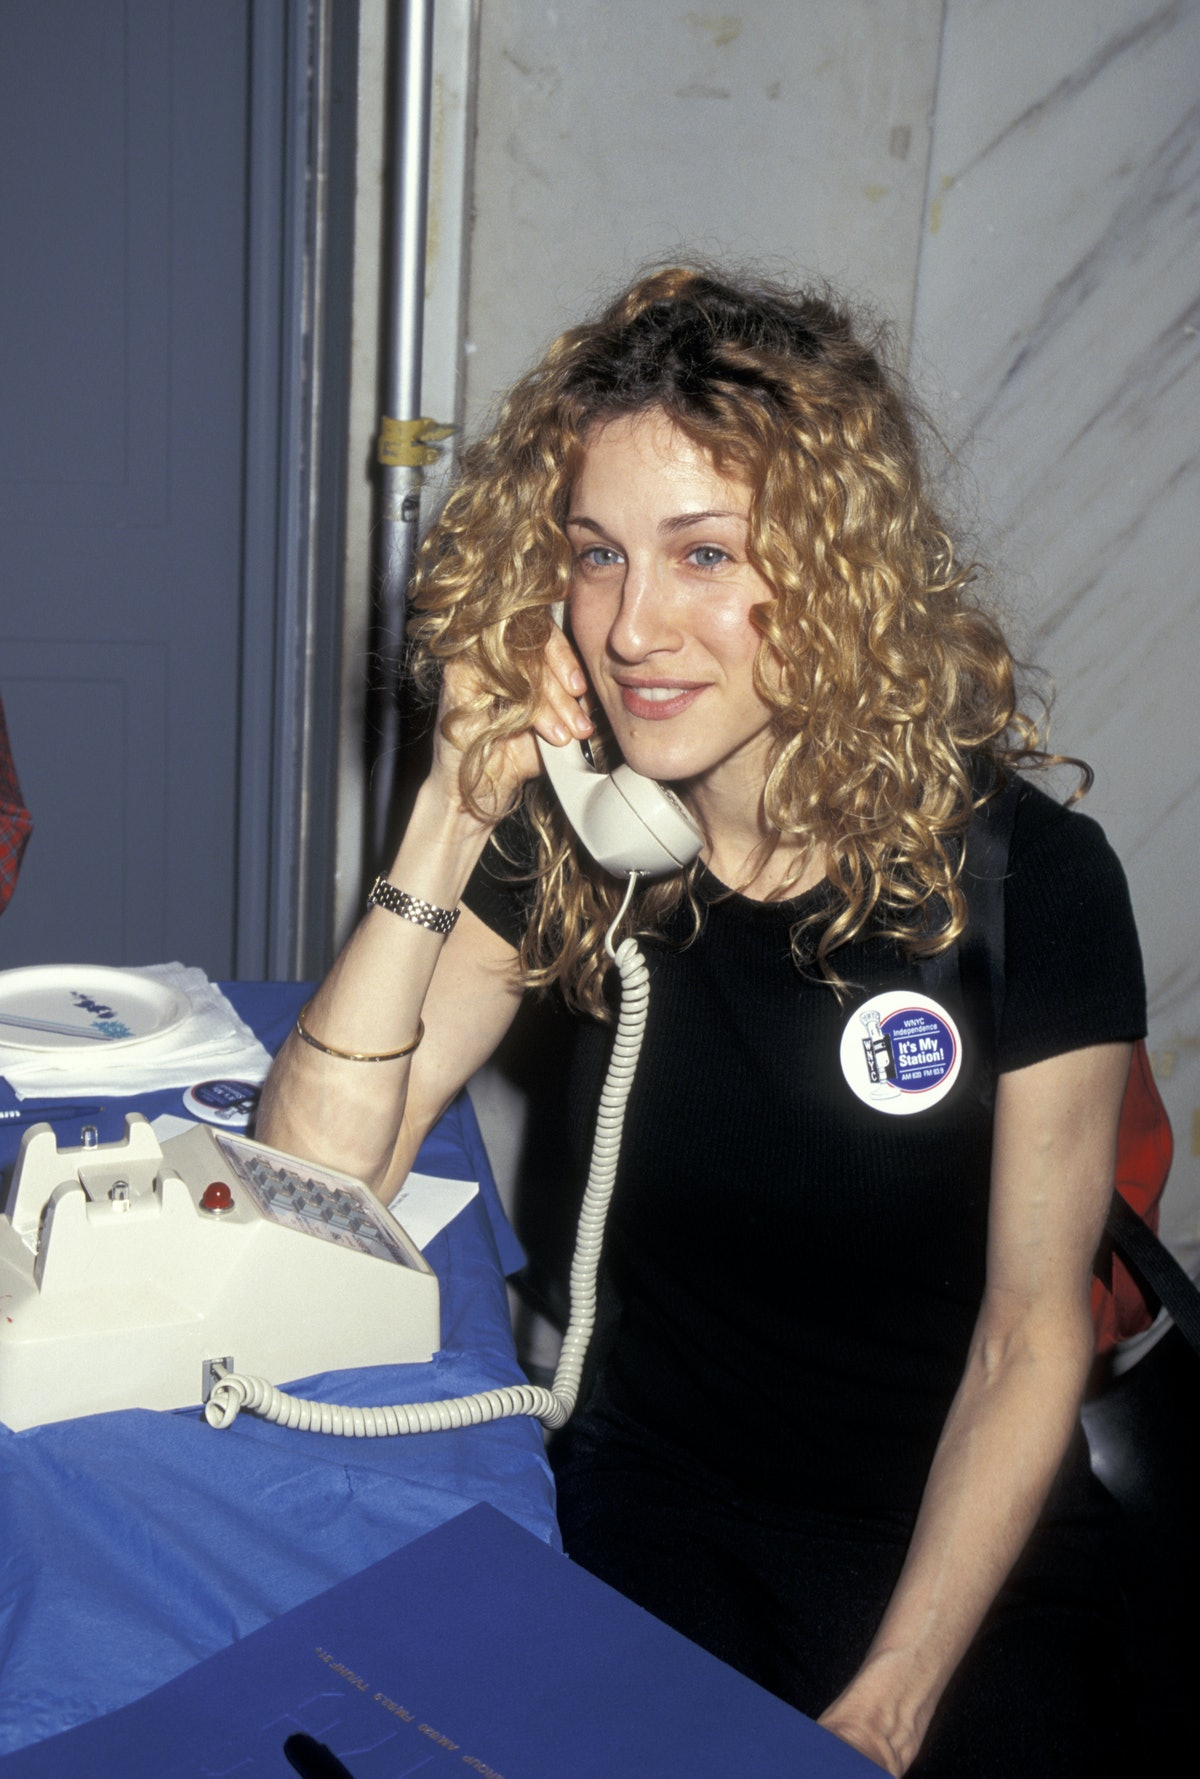 Sarah Jessica Parker, comrade, on the phone to support WNYC